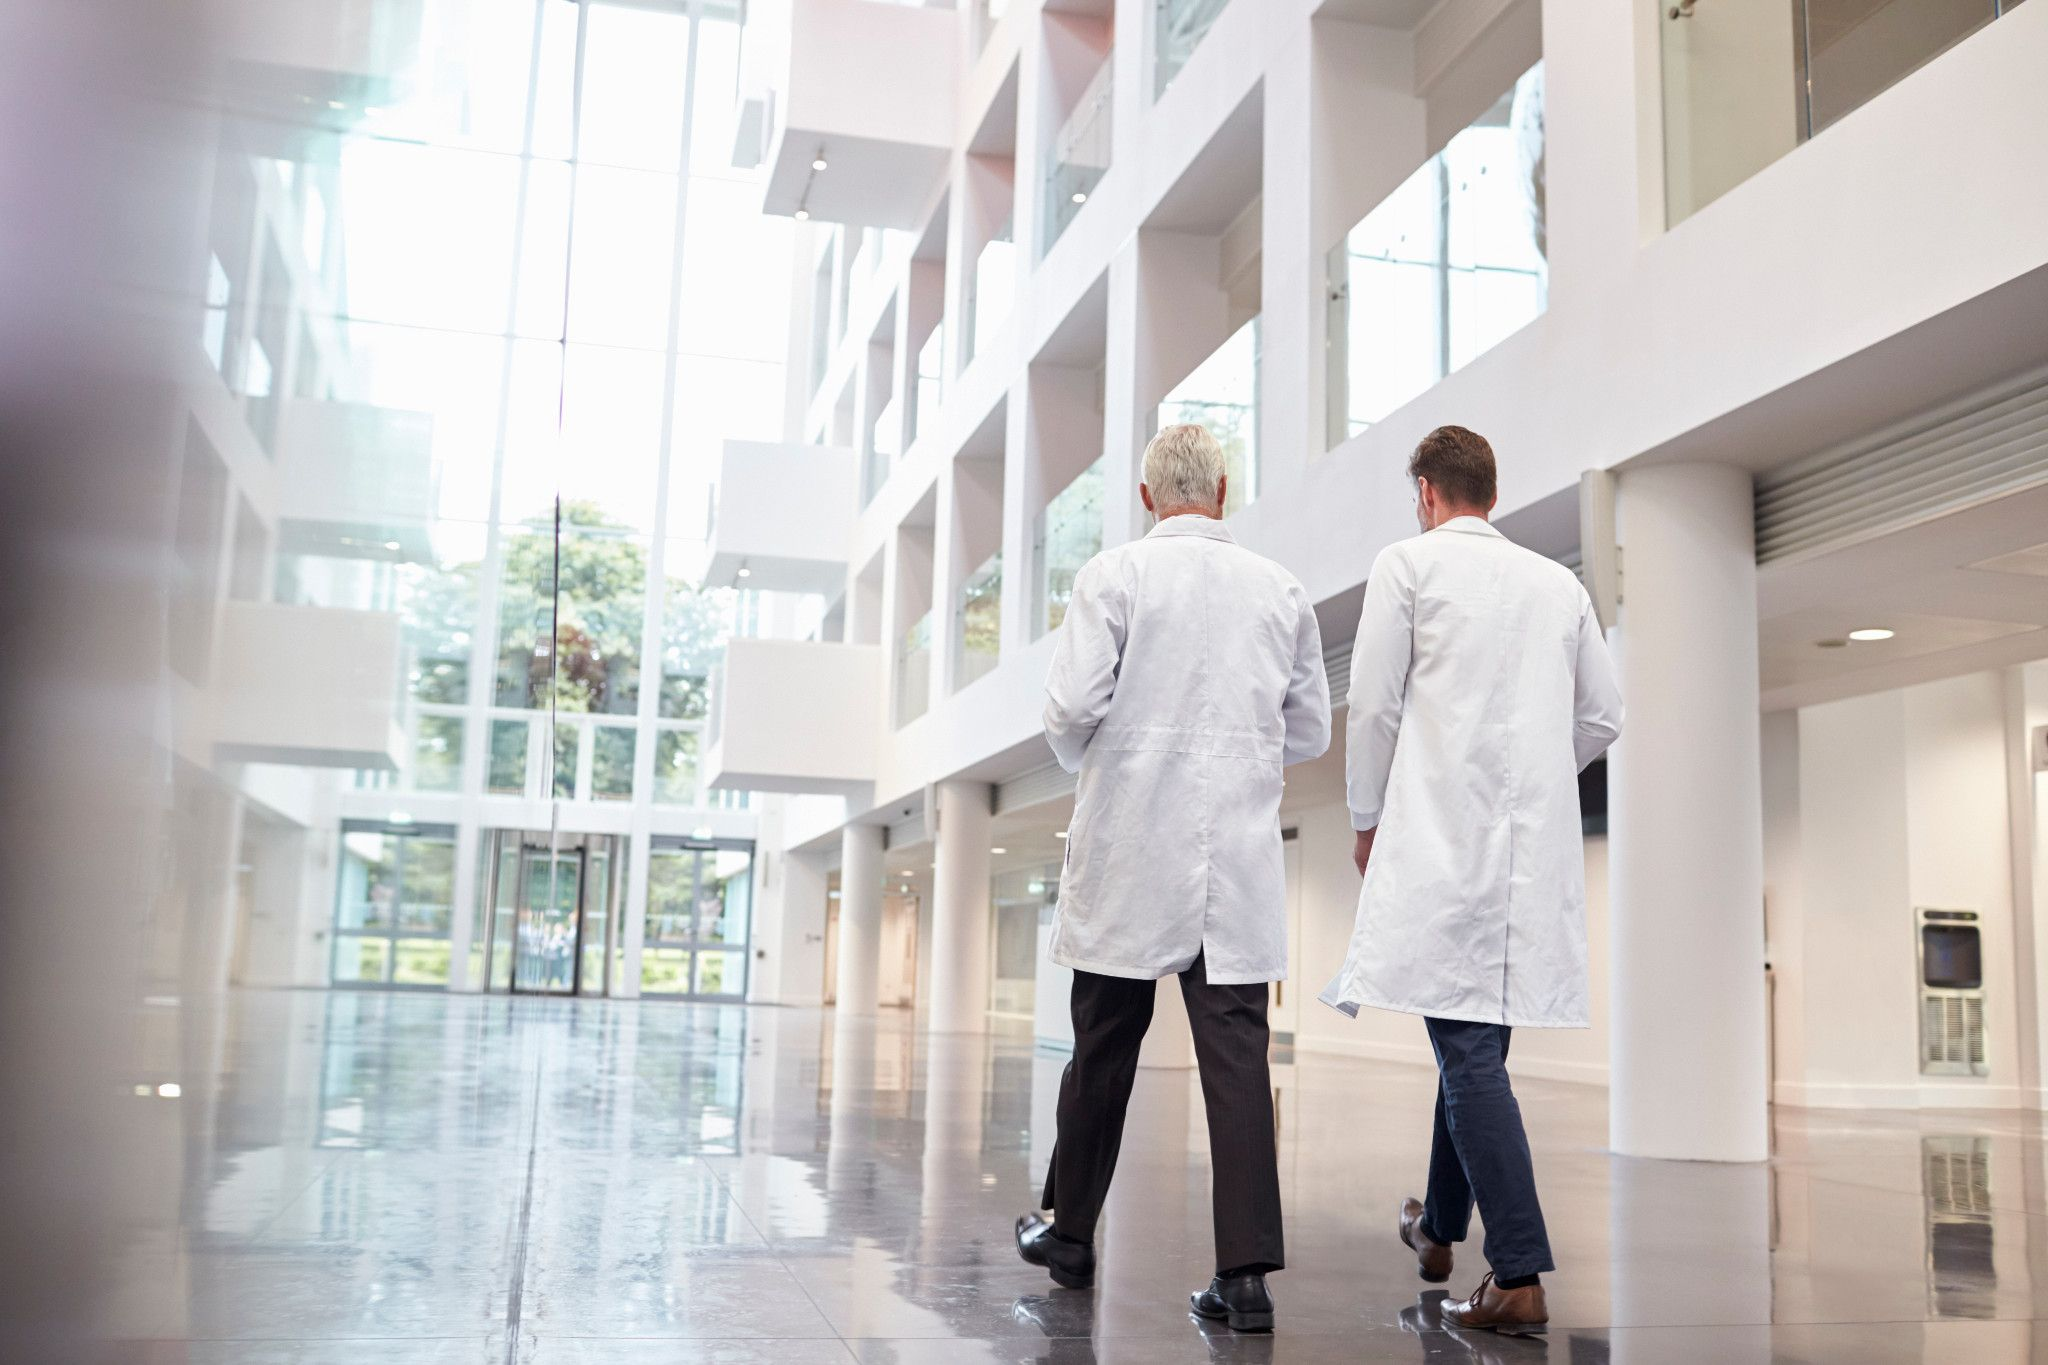 Two scientists walking through the corridors of the laboratory consulting and collaborating to determine the best pathway forward for your drug development program.